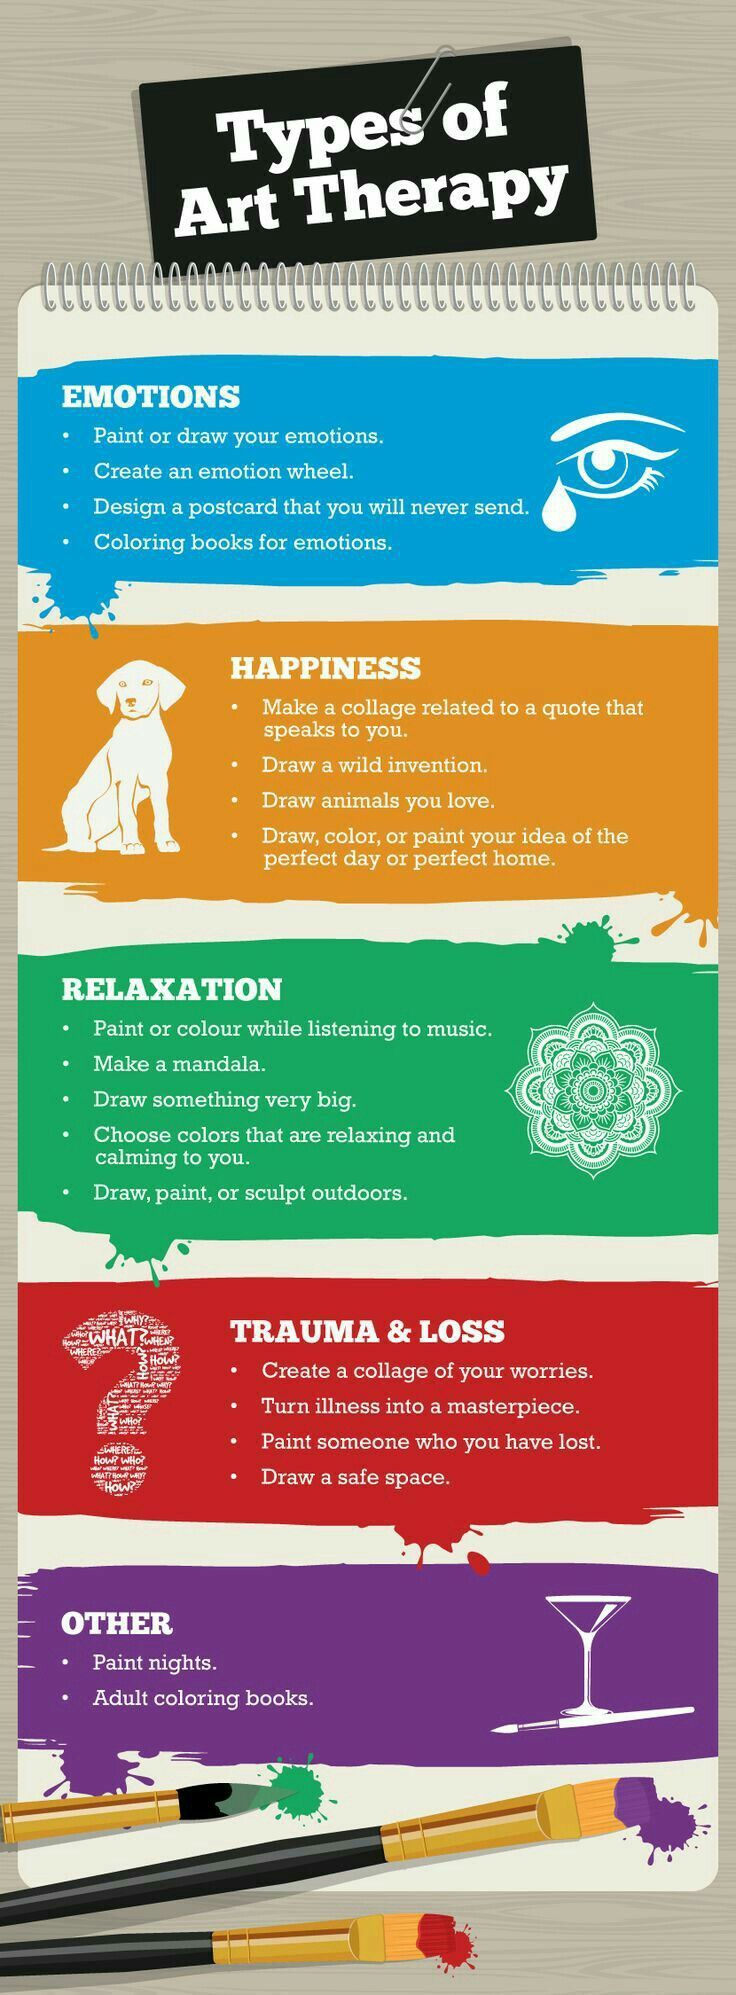 Some more great coping strategies and activities to do